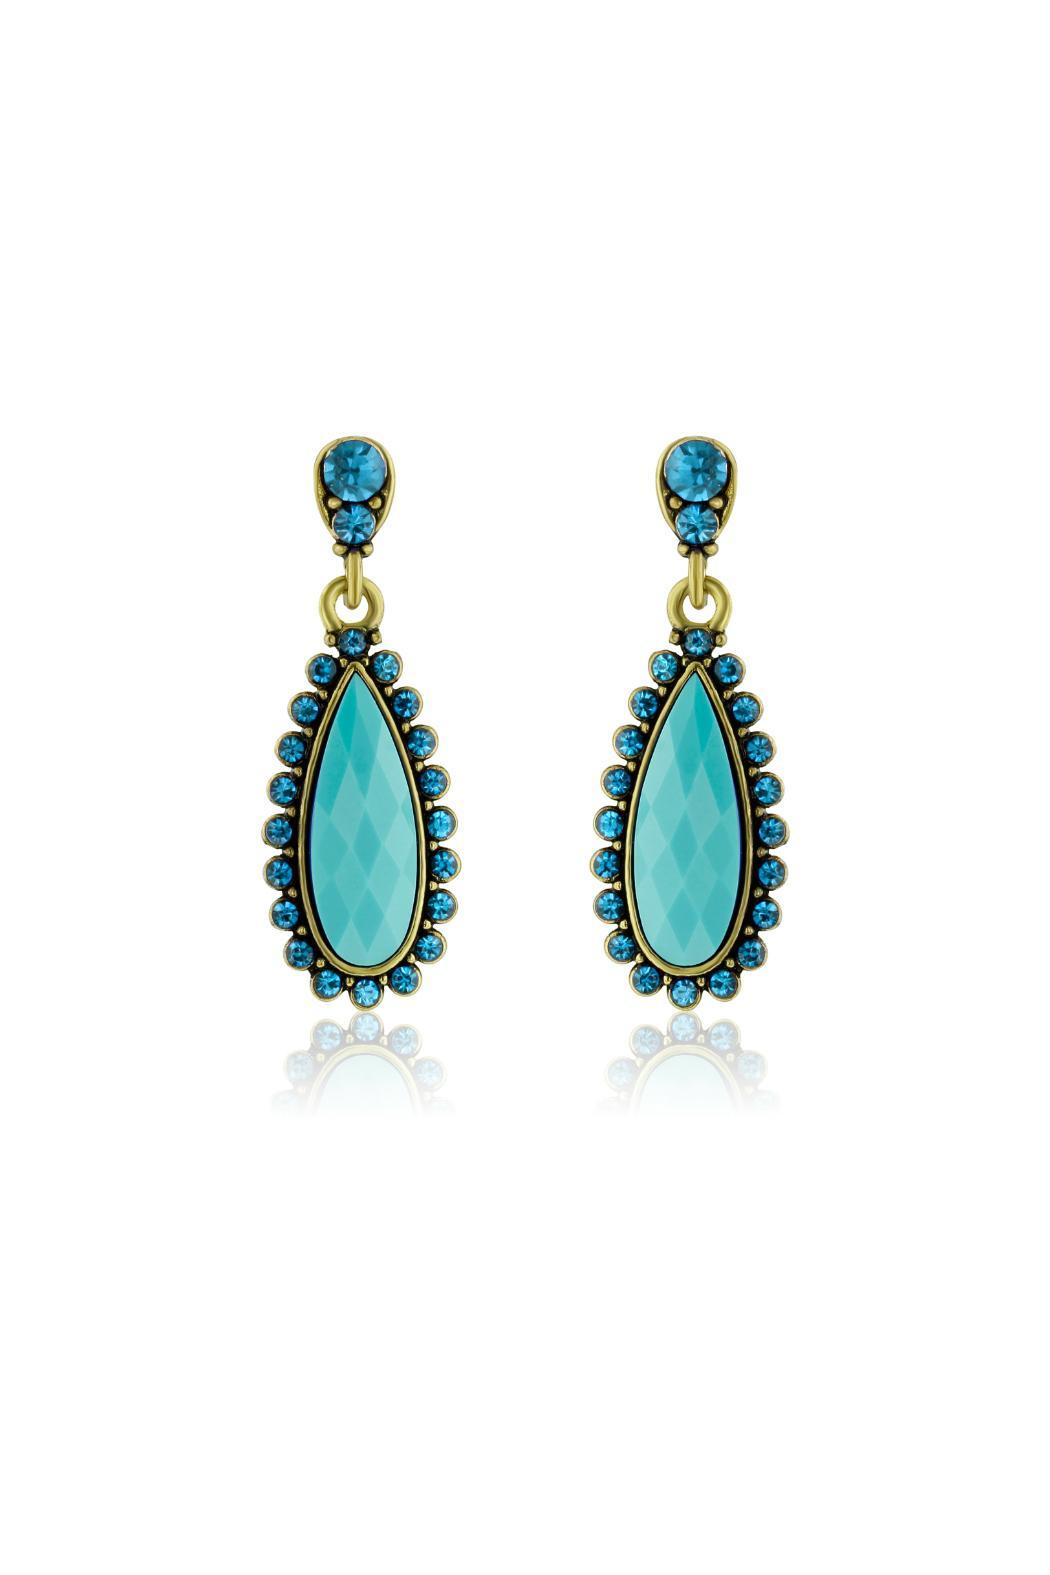 6th Borough Boutique Turquoise Pear Earrings - Main Image